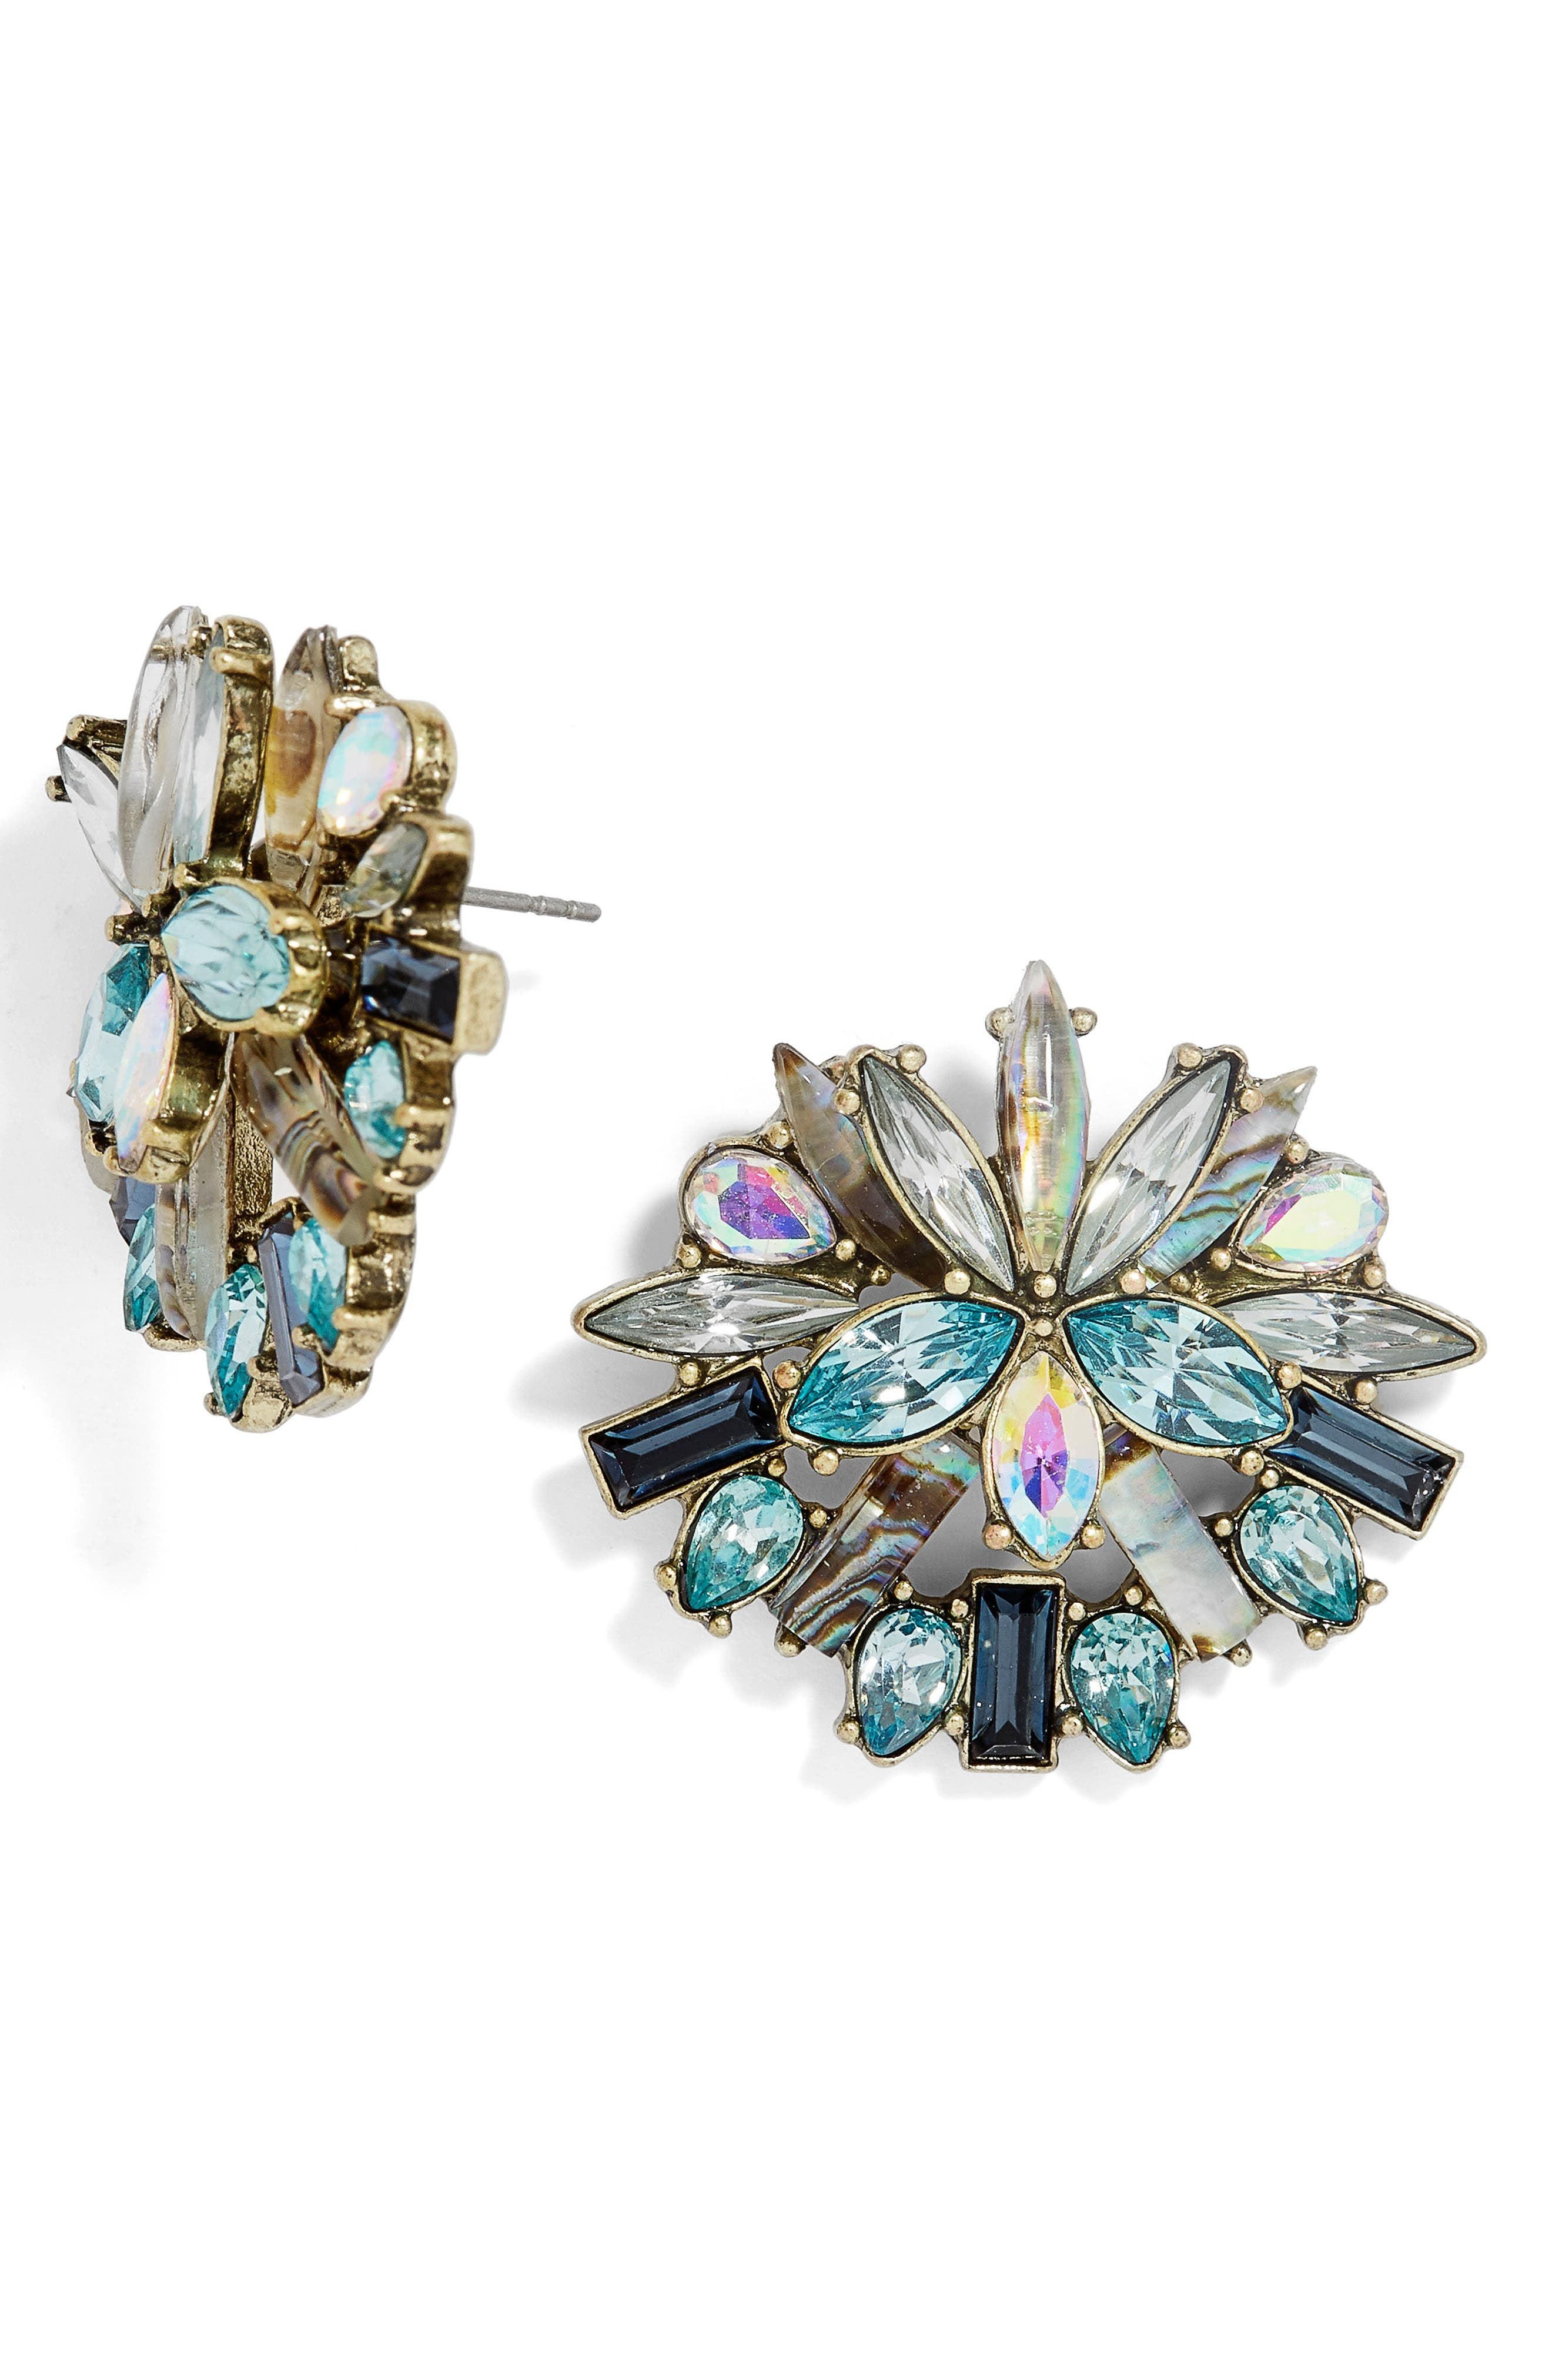 Zaffre Crystal Cluster Stud Earrings,                             Main thumbnail 1, color,                             400